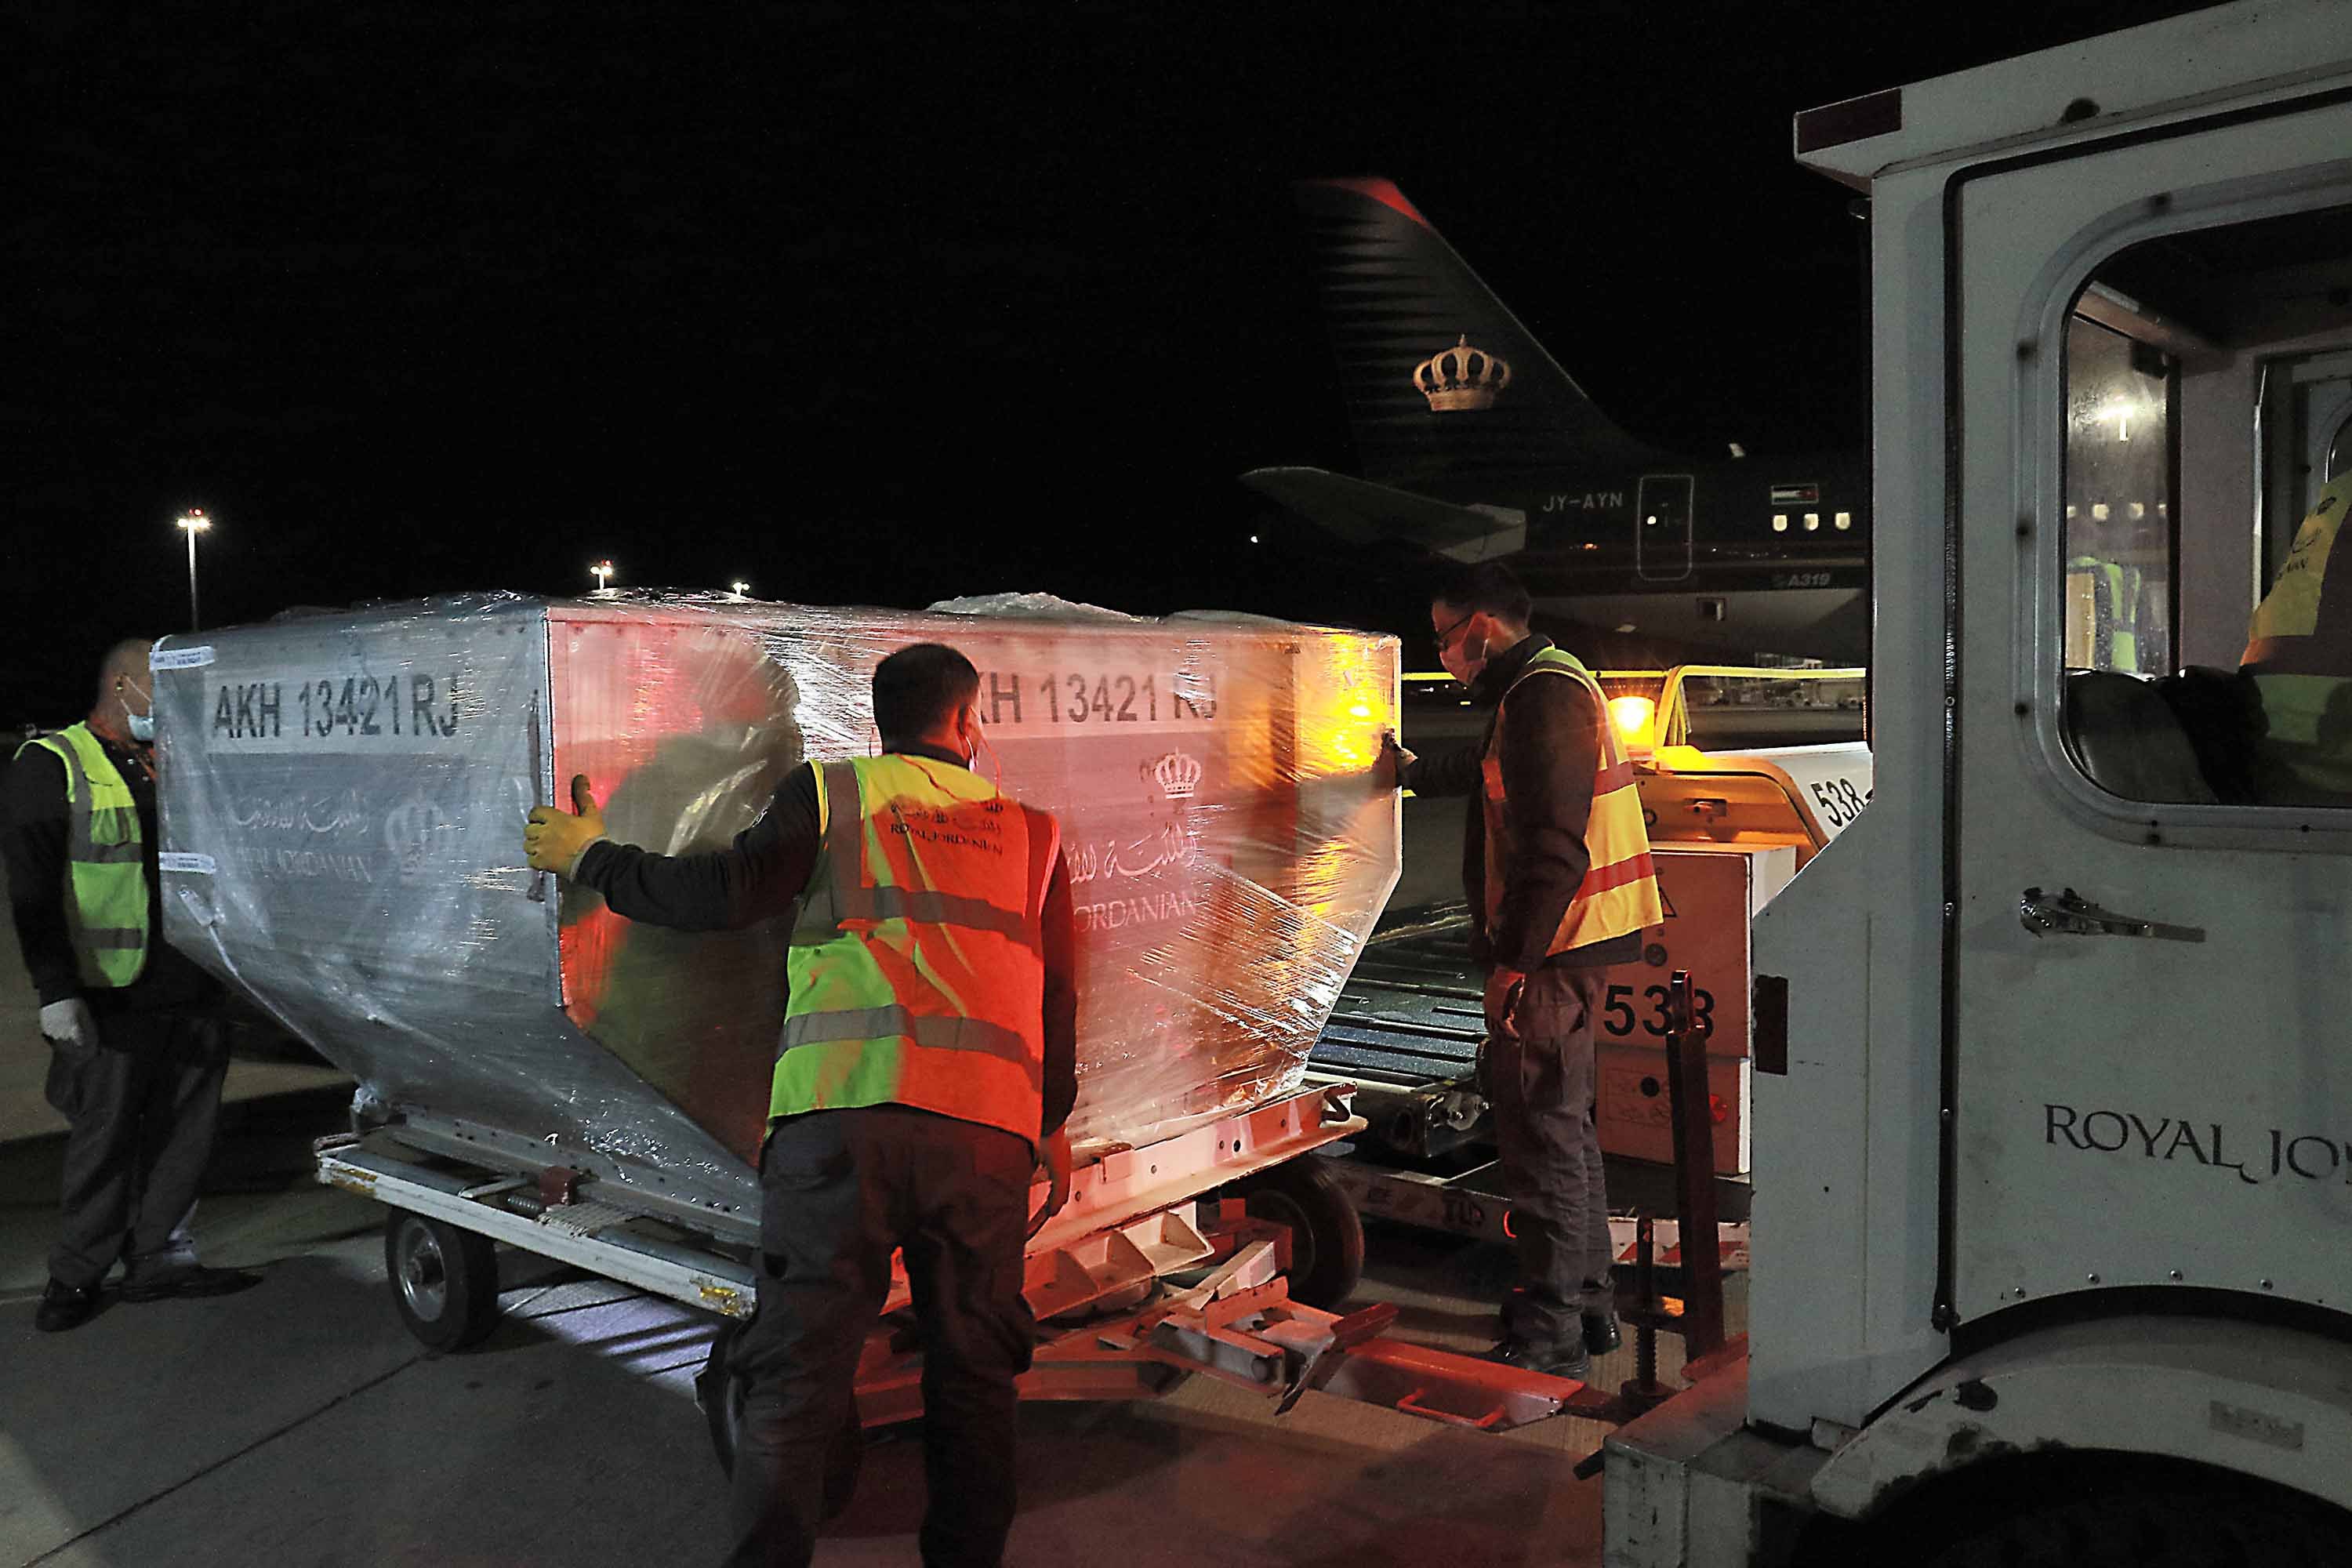 The first batch of the Pfizer-BioNTech vaccine arrives at Jordan's Queen Alia international airport in Amman on January 11.